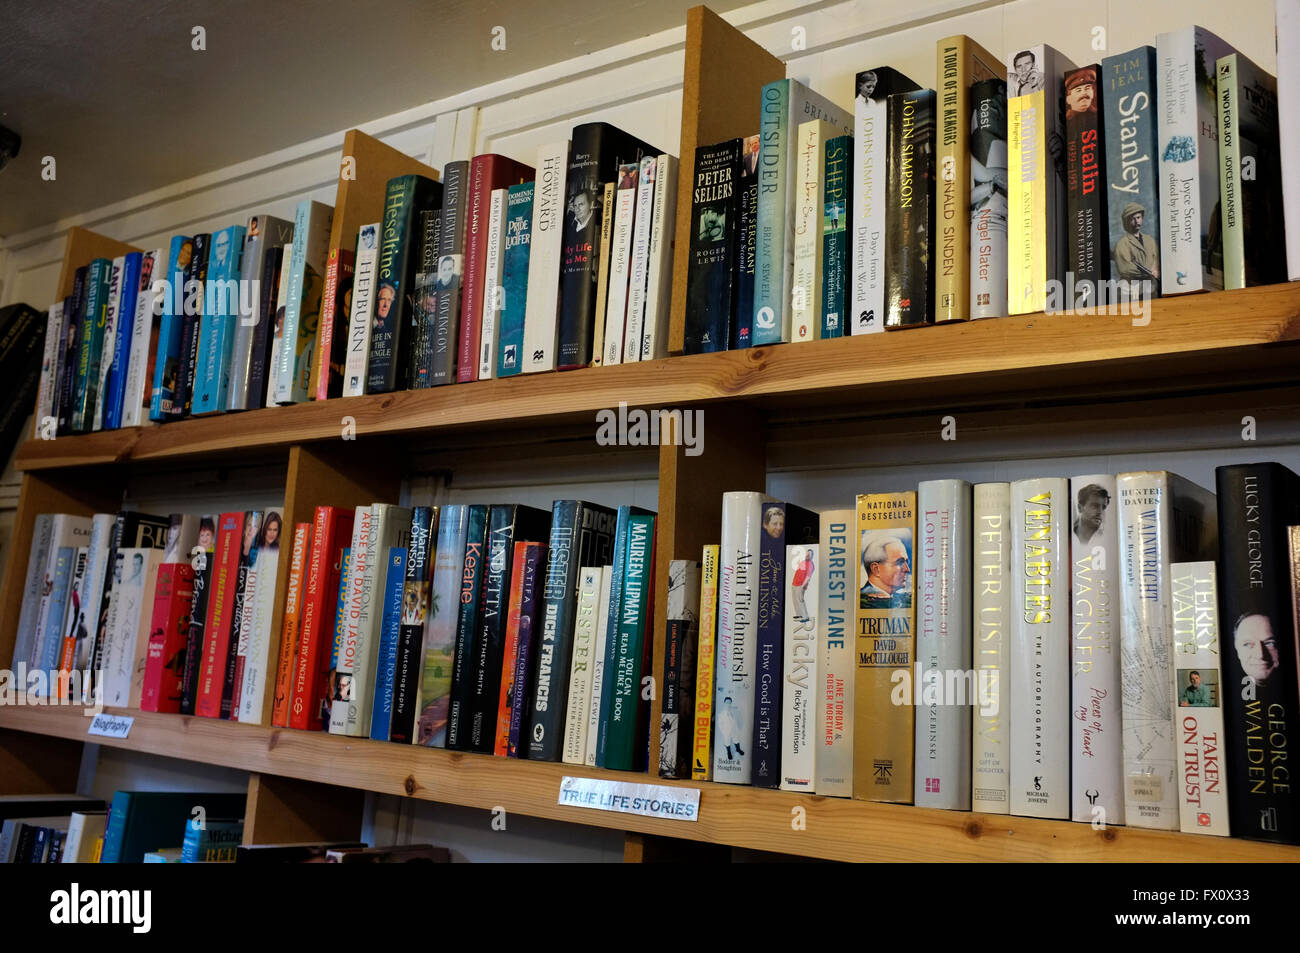 rows of secondhand fiction and non fiction books on wooden shelves in east kent uk april 2016 - Stock Image